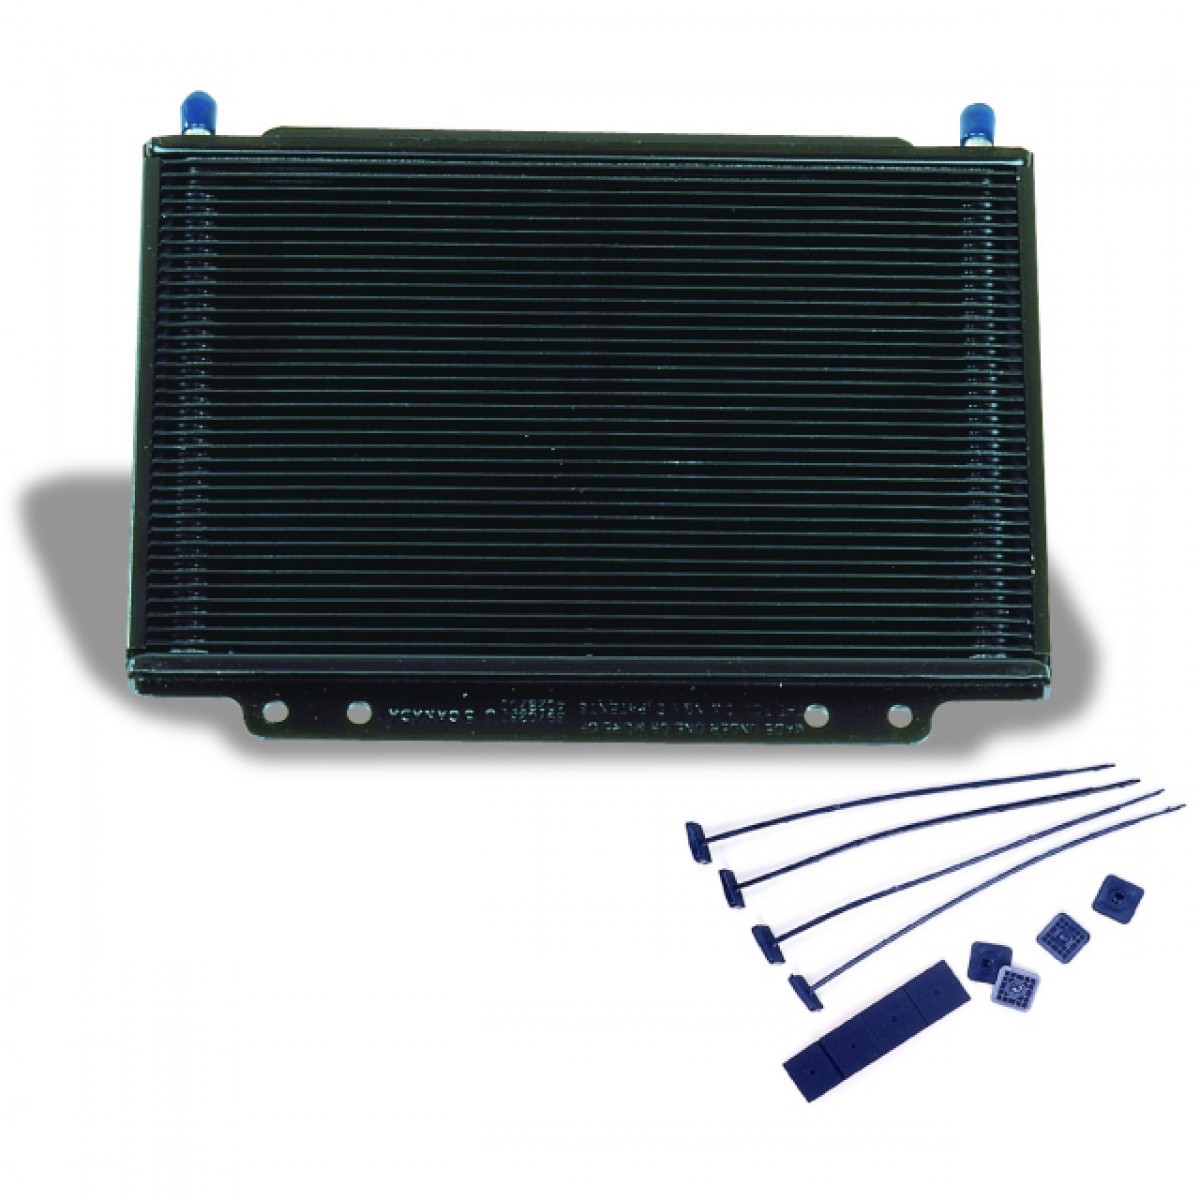 Oil Cooler Supercooler Small Plate Type Black #2B62A0